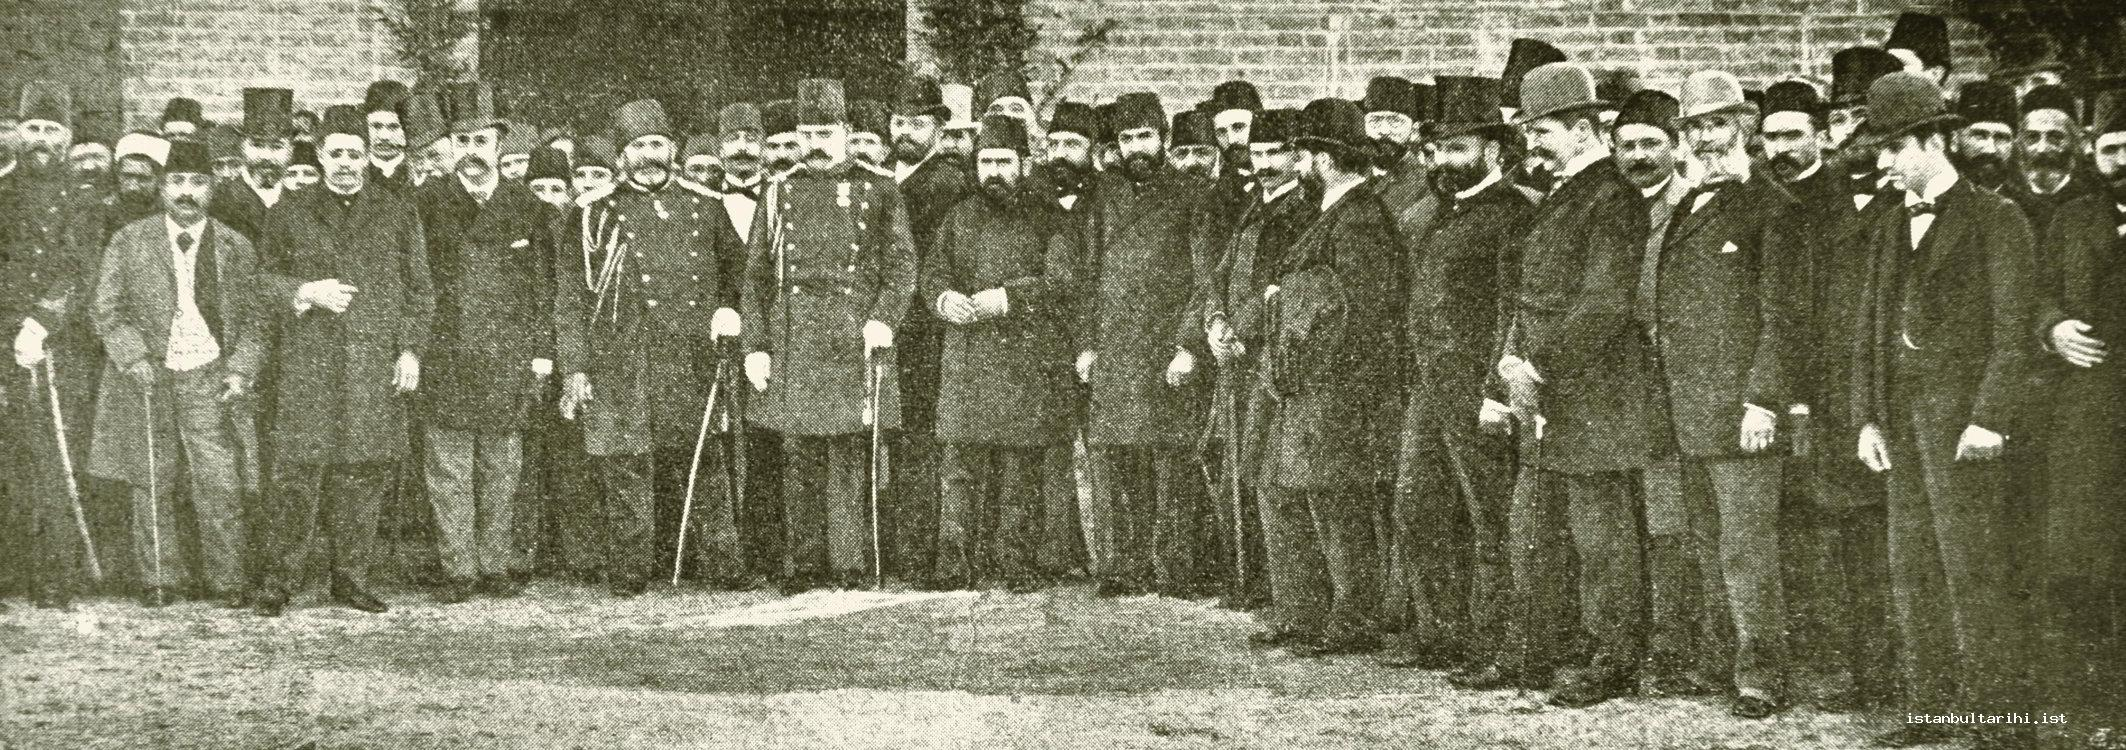 3- The opening ceremony of the company of Tenvir-i Şehr-i İstanbul Şirket-i Osmaniye